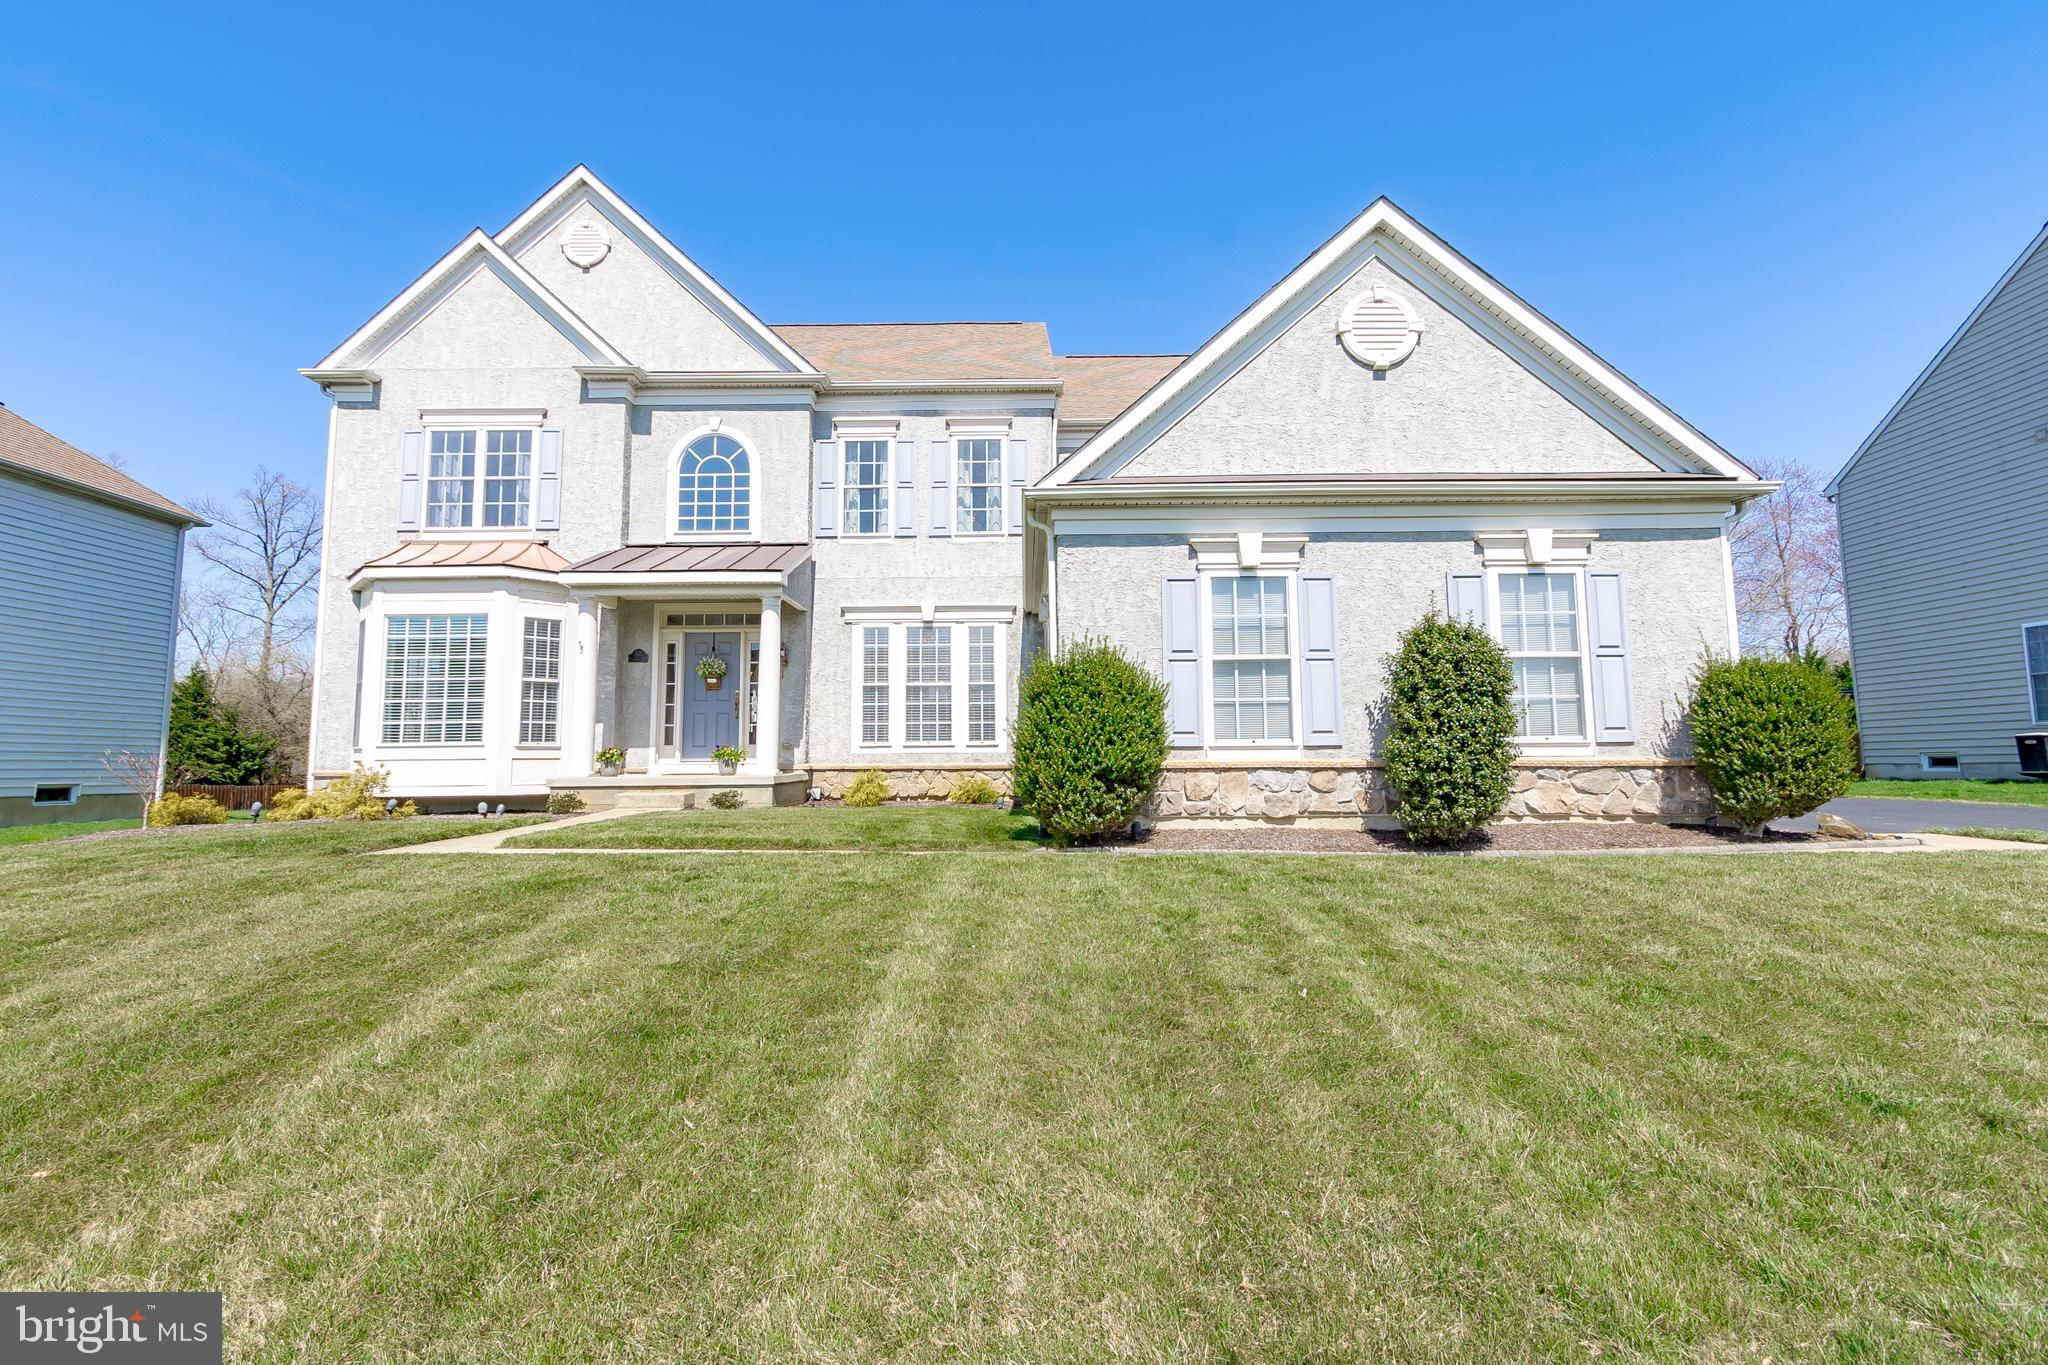 Check out incredible virtual tour at https://www.dropbox.com/sh/9nj3nnul6wb88ia/AAD9s8OMafSKbH0BlHk7_KZaa?dl=0&preview=81+Hempstead+Dr+-+1080.mp4. Open House Saturday, April 3rd from 12:00-2:00. Rarely available beautiful home, with an amazing in-law suite, located in the highly sought after Estates of Farmington. Enjoy living North of the Summit Bridge and in the award winning Appoquinimink School District. From the moment you drive up, this home is a true treasure with a huge bay window, covered front porch and 3 car garage! As you enter, you are greeted by the two-story open foyer and the adjacent living room and dining room. Next you will find the two-story family room with a wood burning fireplace that opens to the pristine kitchen. The kitchen features cherry cabinets, corian countertops, an incredible center island, recessed lighting, a walk-in pantry, and a Florida room filled with windows. A true chef's delight! On this level, you will also find a spacious office, powder room and laundry room. Upstairs you will find the impressive master suite and master bathroom with double vanities, a stand-up shower and a soaking tub. There are three additional bedrooms upstairs; one bedroom has its own private full bath, and the other two bedrooms share a jack and jill bathroom. The true gem of this home is the finished lower level! Featuring over 1500 square feet, this space includes a family room, bedroom, game or exercise area, full bathroom, storage room, a kitchenette, and a separate private entrance! And for our nautical friends, you will absolutely love the 8 foot wide, 300 gallon, built-in fish tank! Between the upper levels and the lower level, this home boasts over 5000 square feet! However, it does not stop there. This home sits on a half acre with a gorgeous composite deck and fenced yard! Just in time for summer fun! Close to the YMCA and the premier Glasgow Regional Park with full amenities including a huge playground, a state-of-the-art skate park, bark p